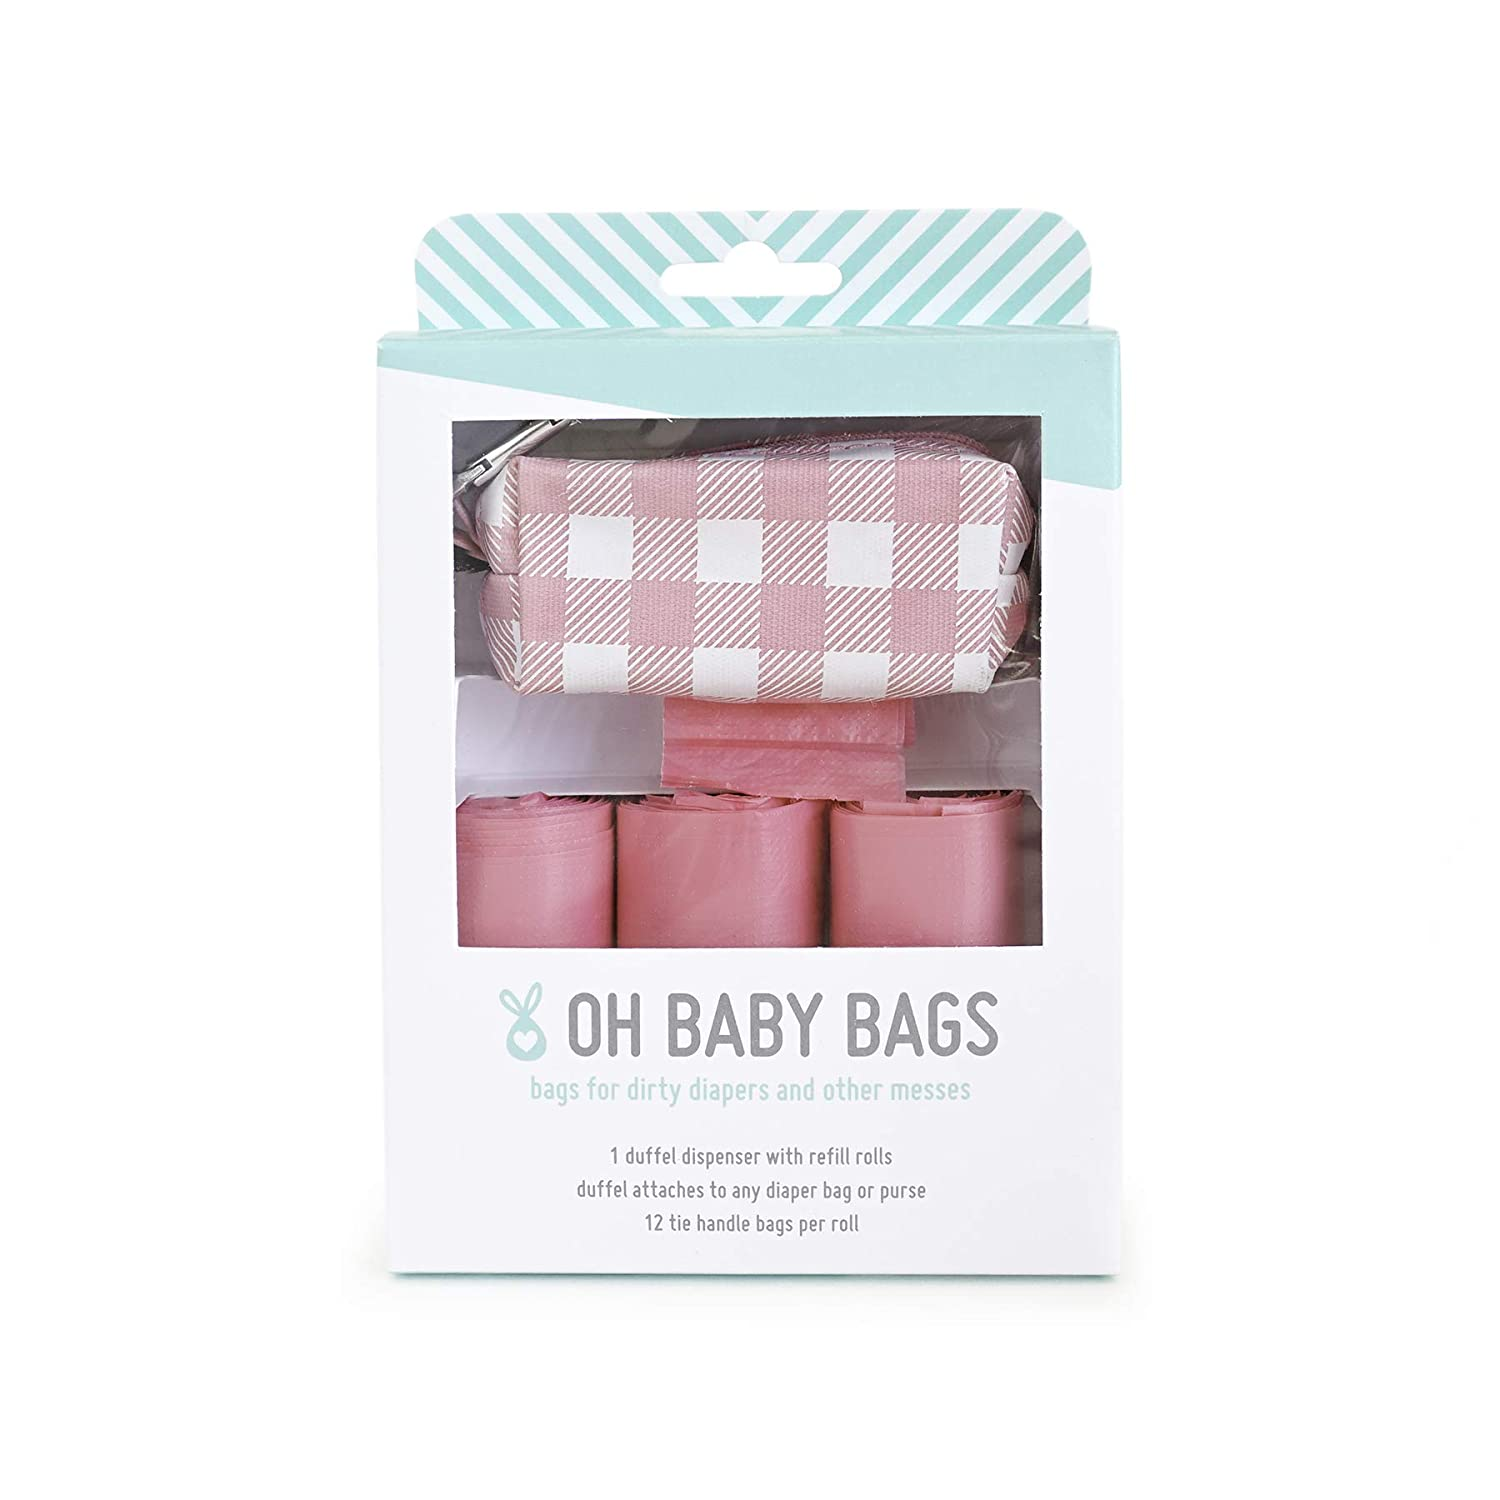 OH BABY BAGS DIRTY DIAPER BAG DISPENSER CLIP ON BAG HOLDER ATTACHES TO ANY DIAPER BAG 144 COUNT LARGE TIE HANDLE BAGS